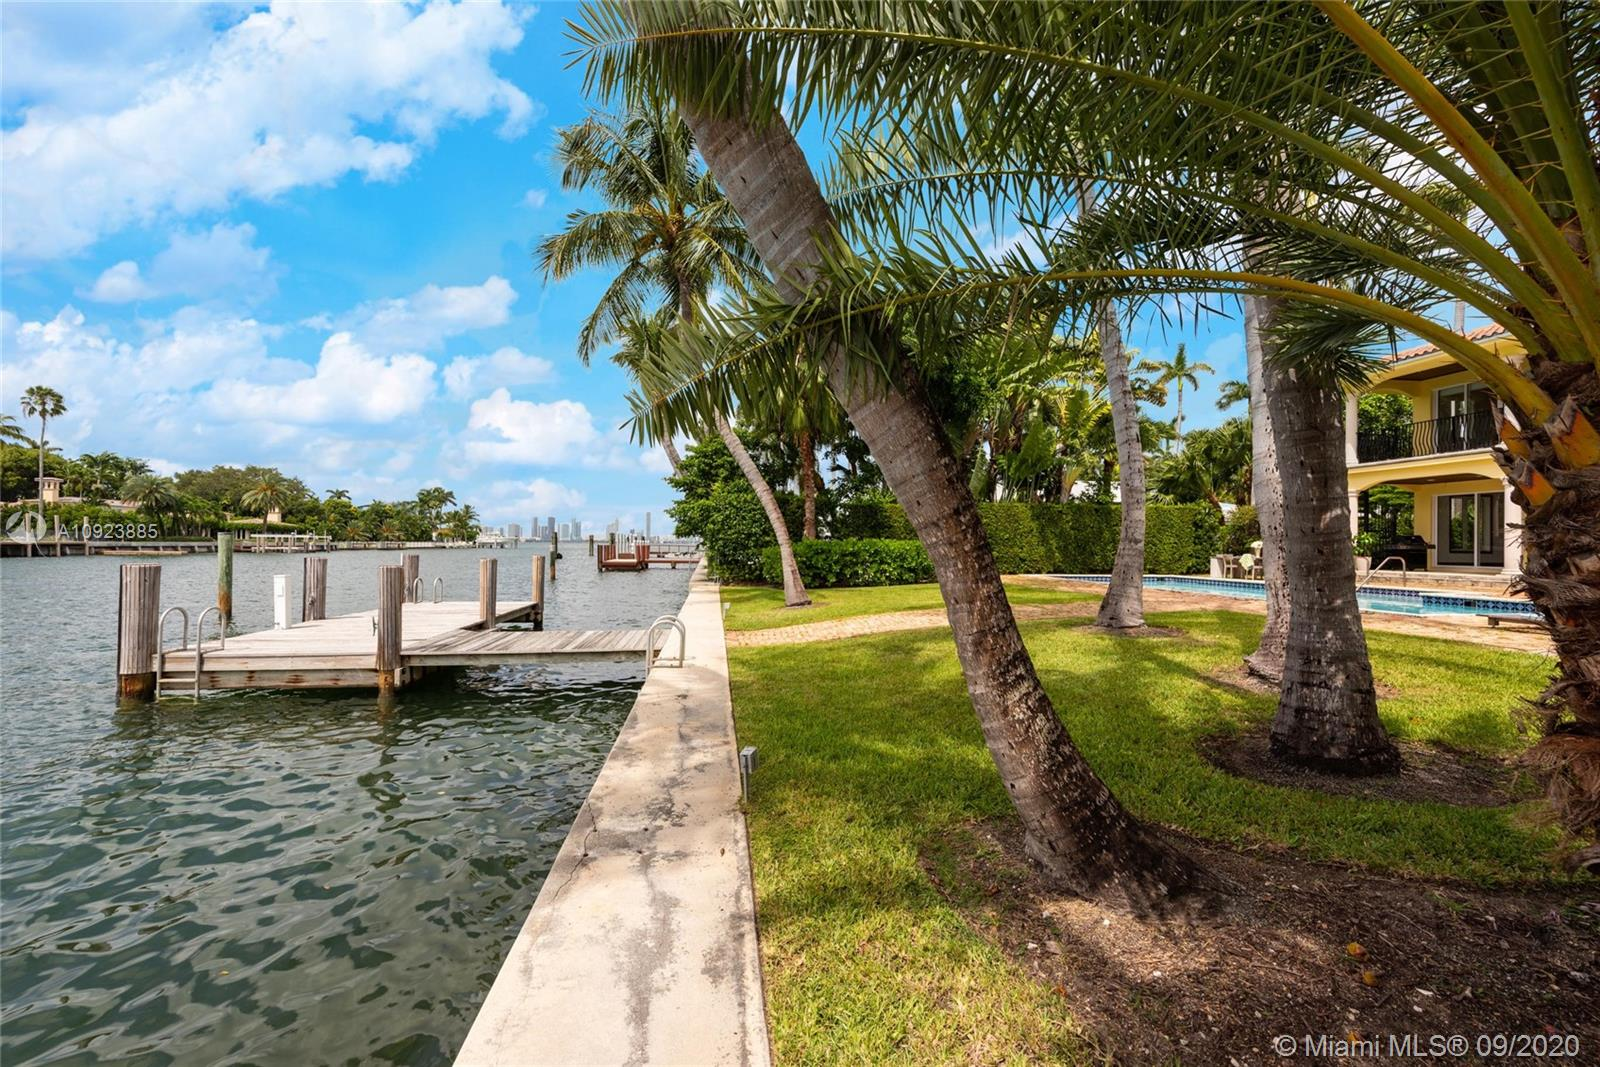 70' of waterfront with dock & boat lift